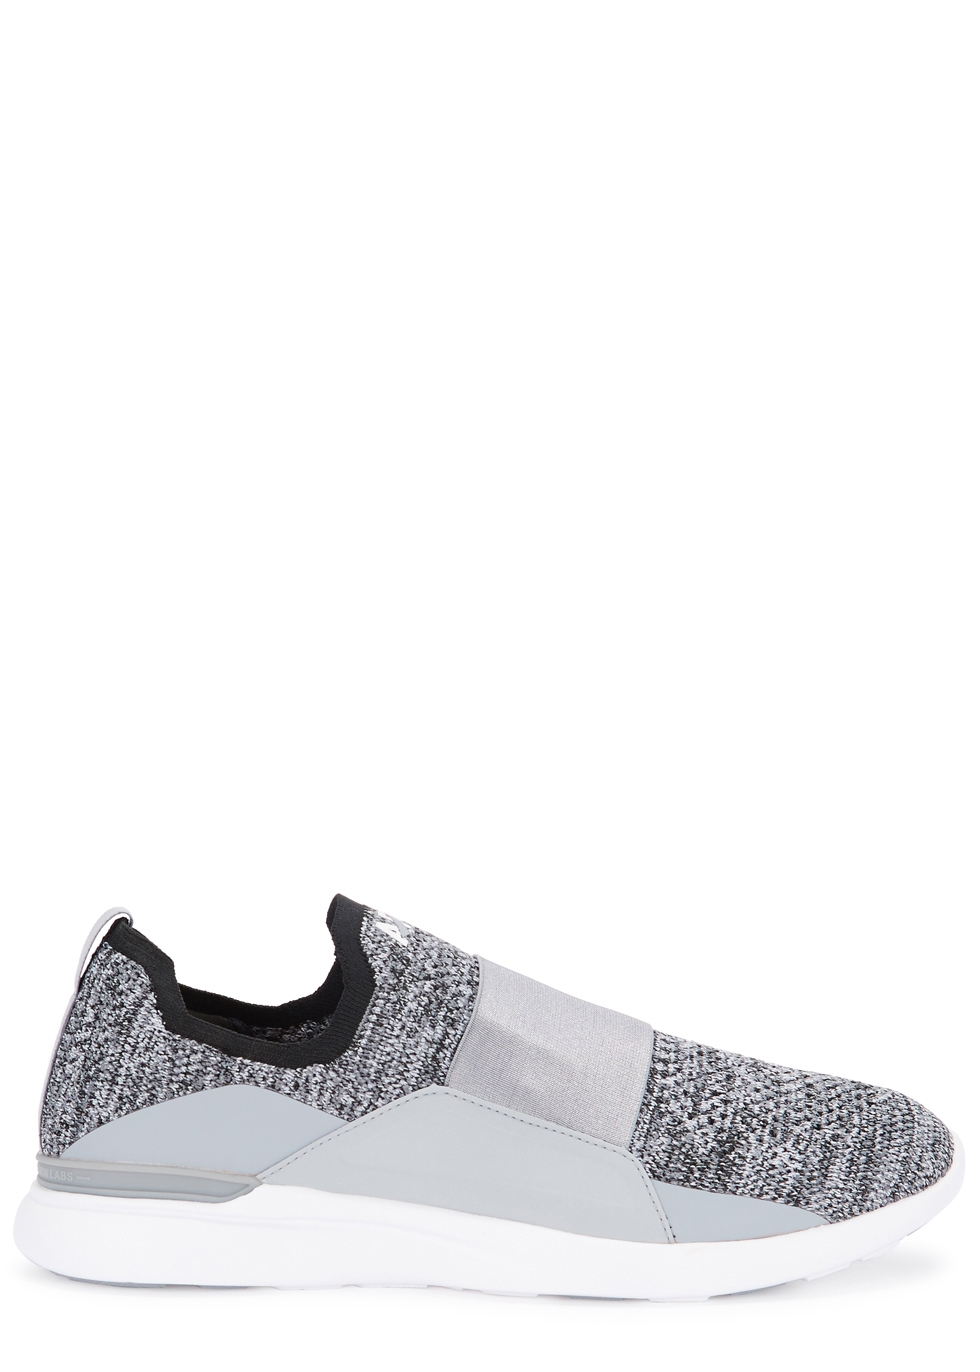 APL ATHLETIC PROPULSION LABS TECHLOOM BLISS GREY KNITTED TRAINERS